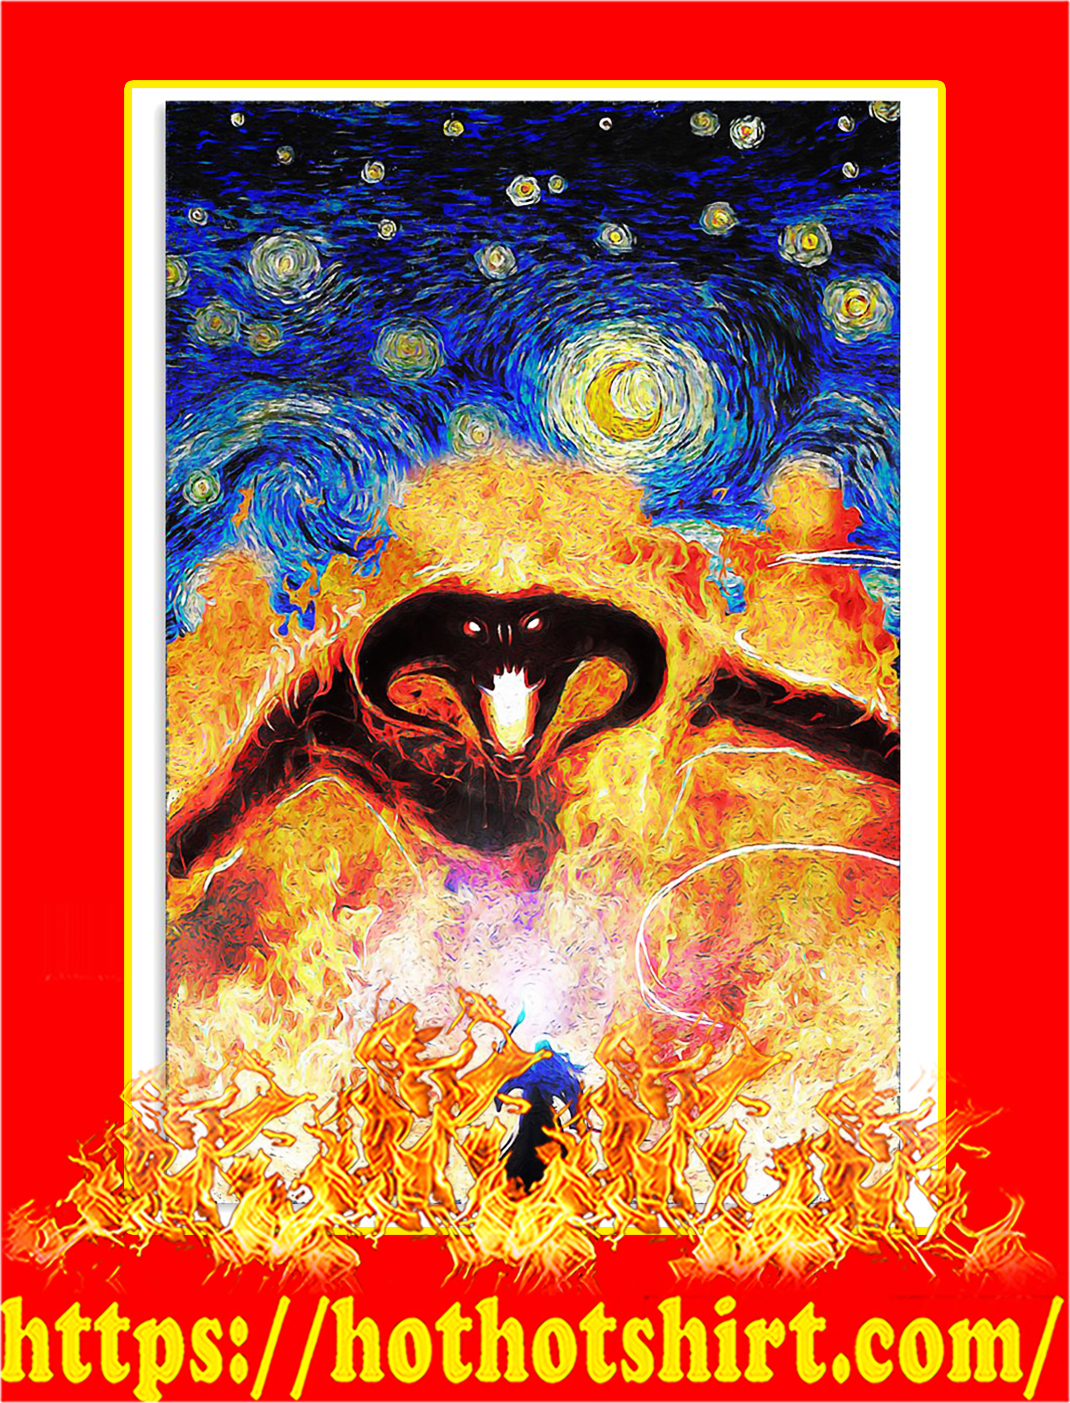 Balrog LOTR fire demon starry night poster - A2